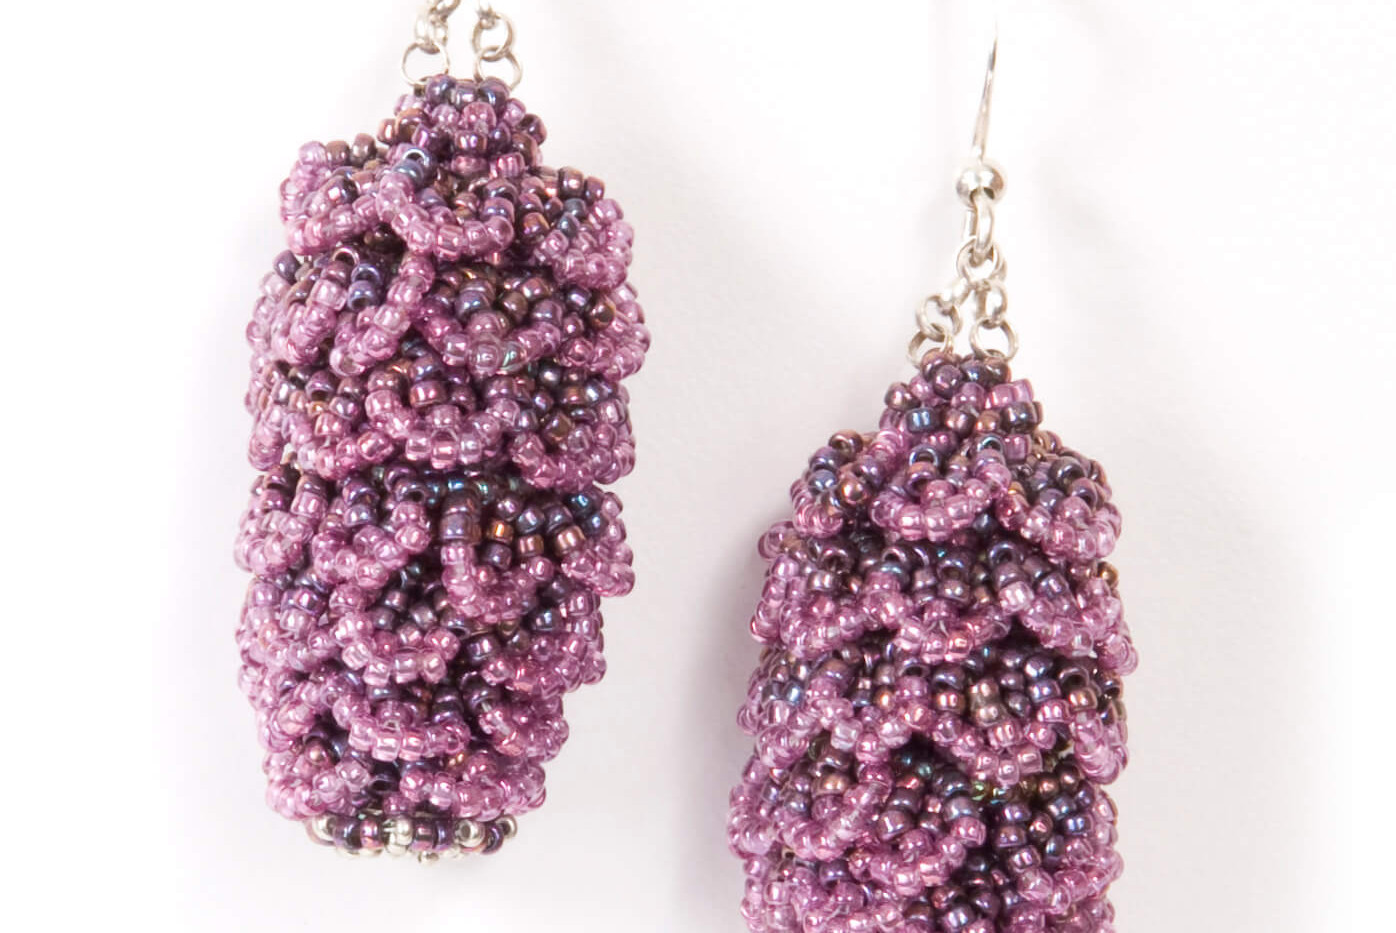 Pining Earrings in Olive and Amethyst